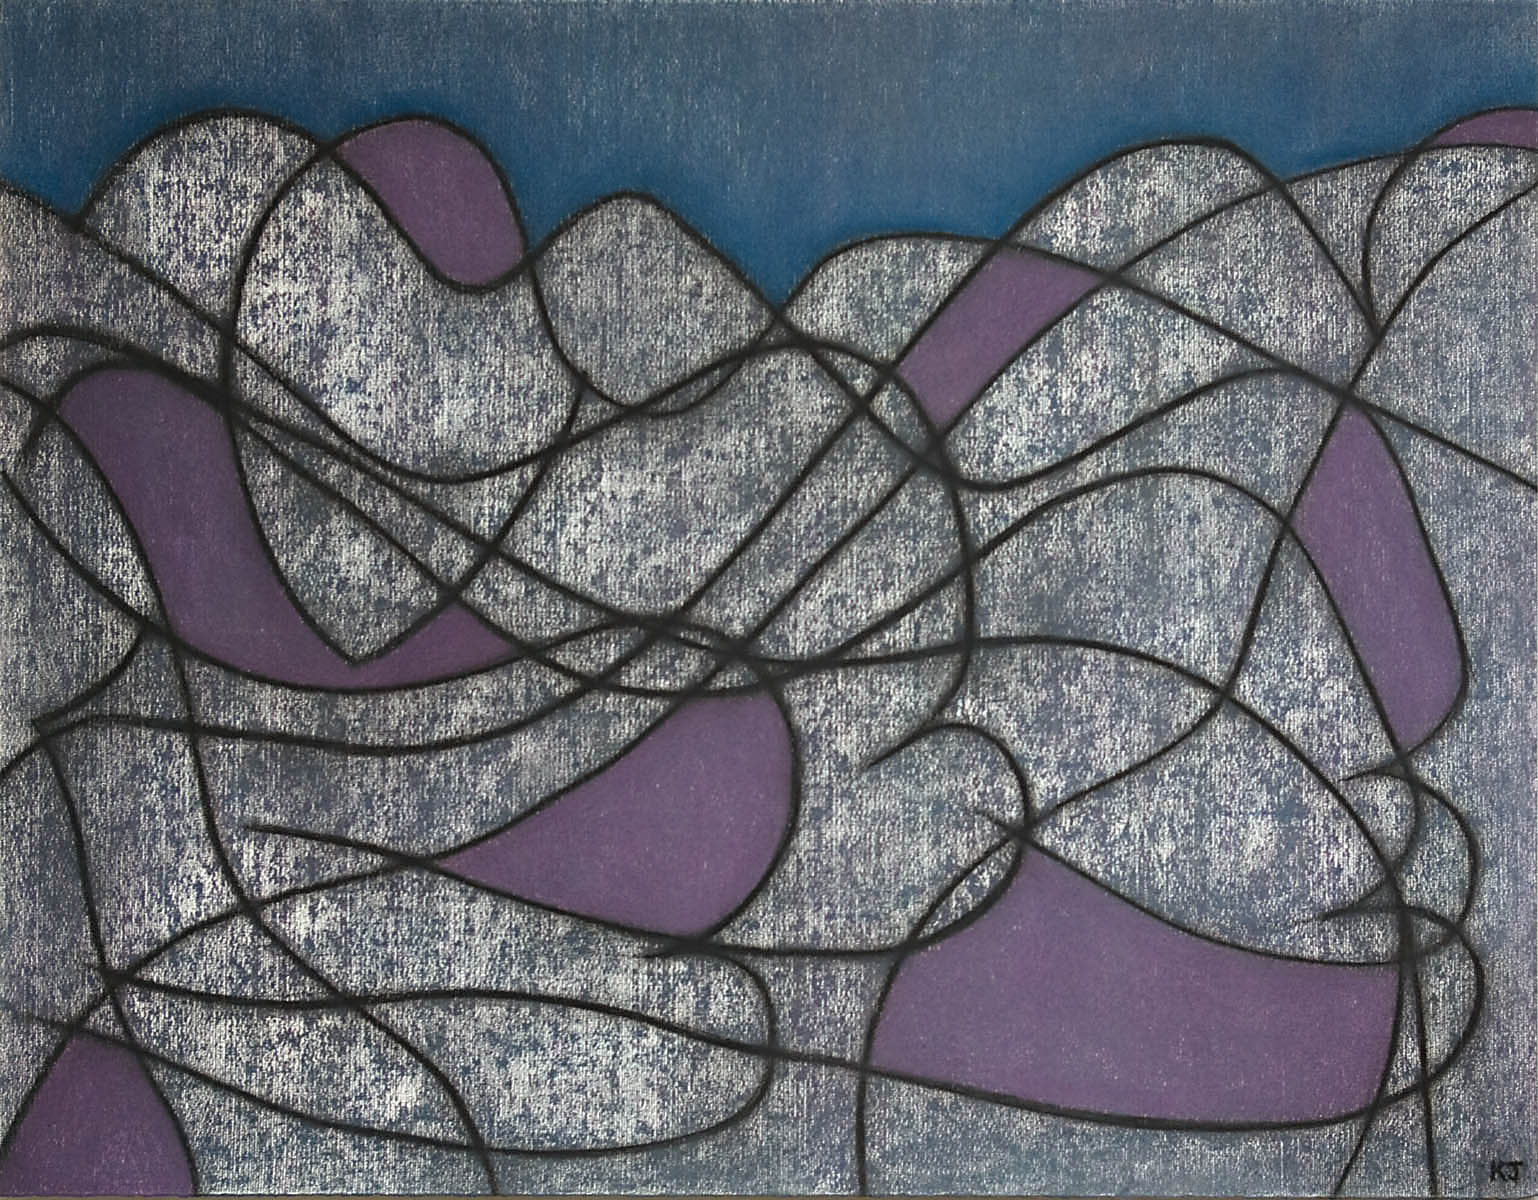 Composition On Grey No 2 artwork by Kevin Jones - art listed for sale on Artplode